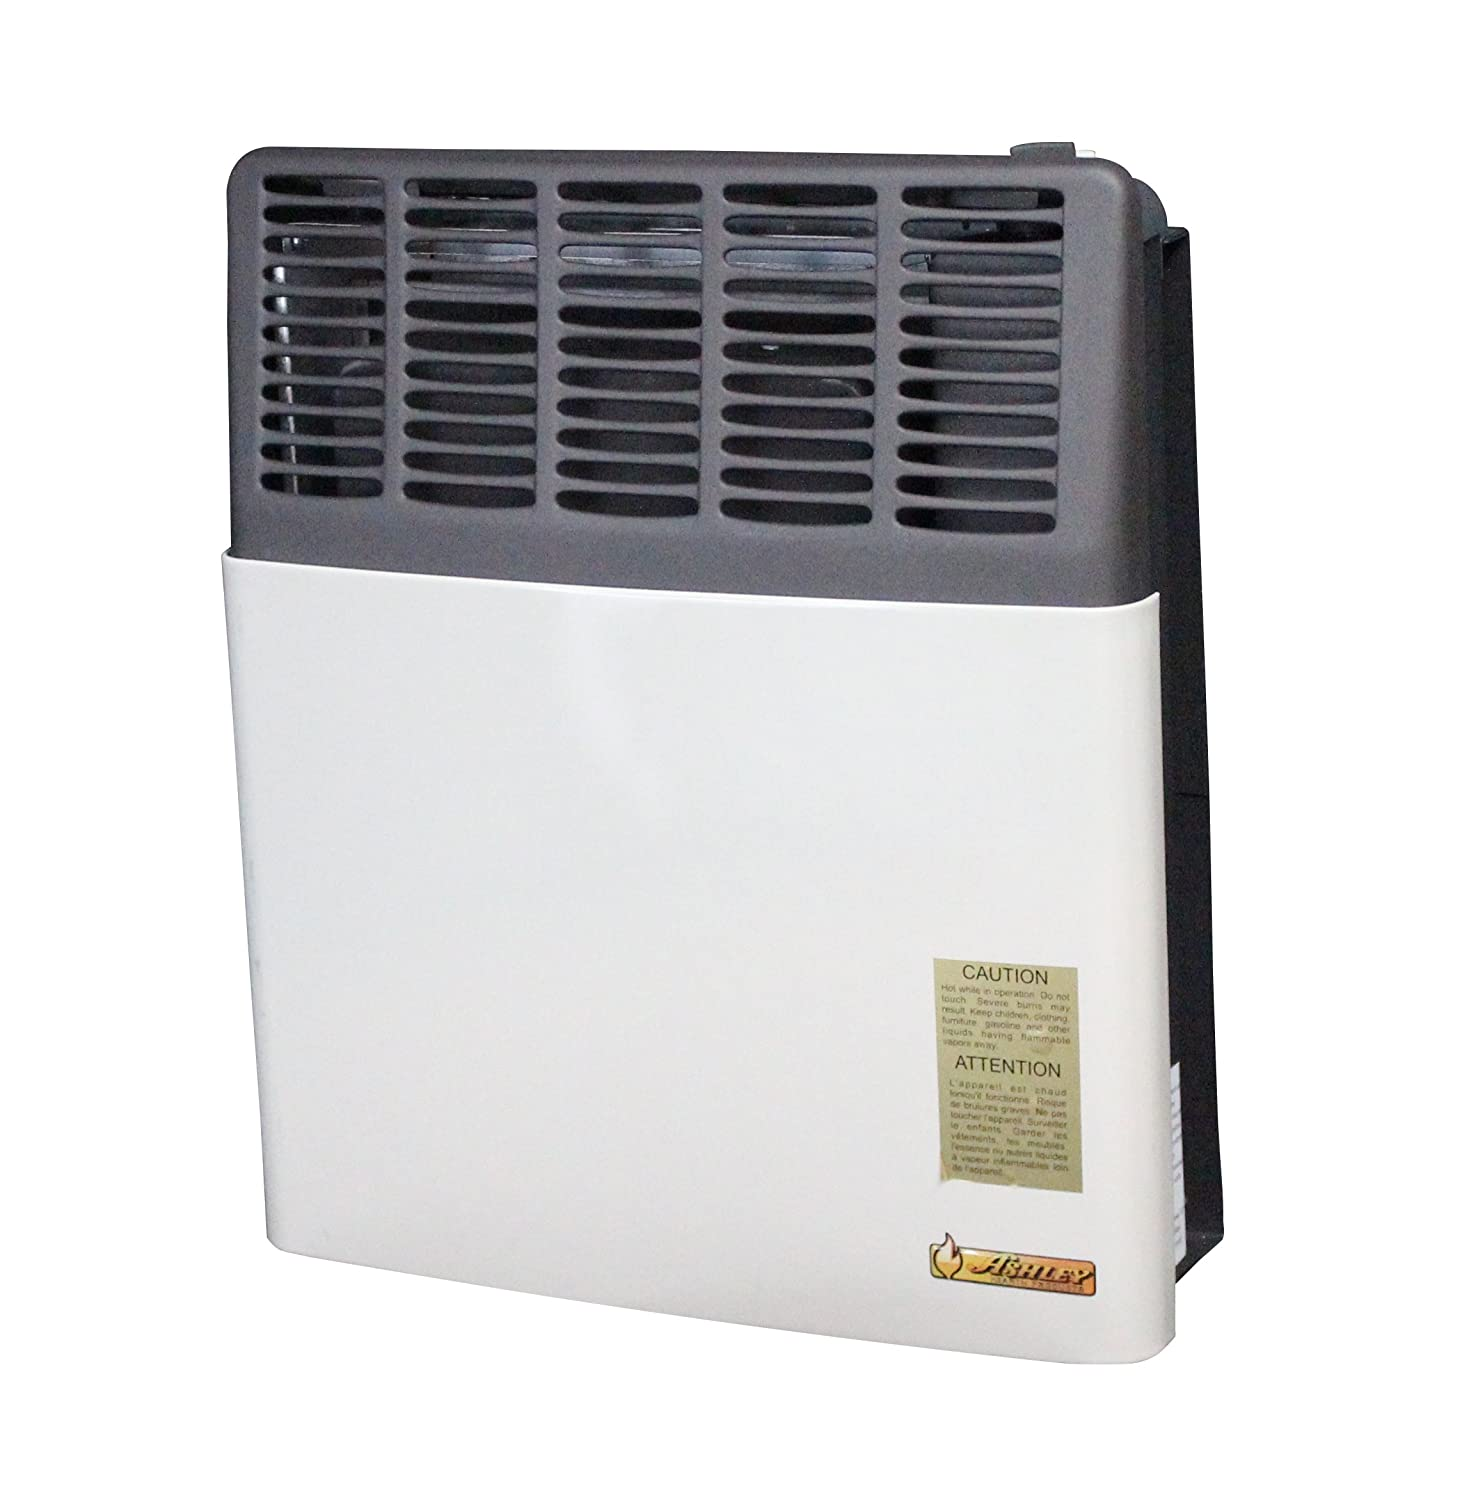 natural gas heaters for homes. Amazon.com: US Stove AGDV20N Ashley Direct Vent 17,000 BTU Natural Gas Heater: Home \u0026 Kitchen Heaters For Homes